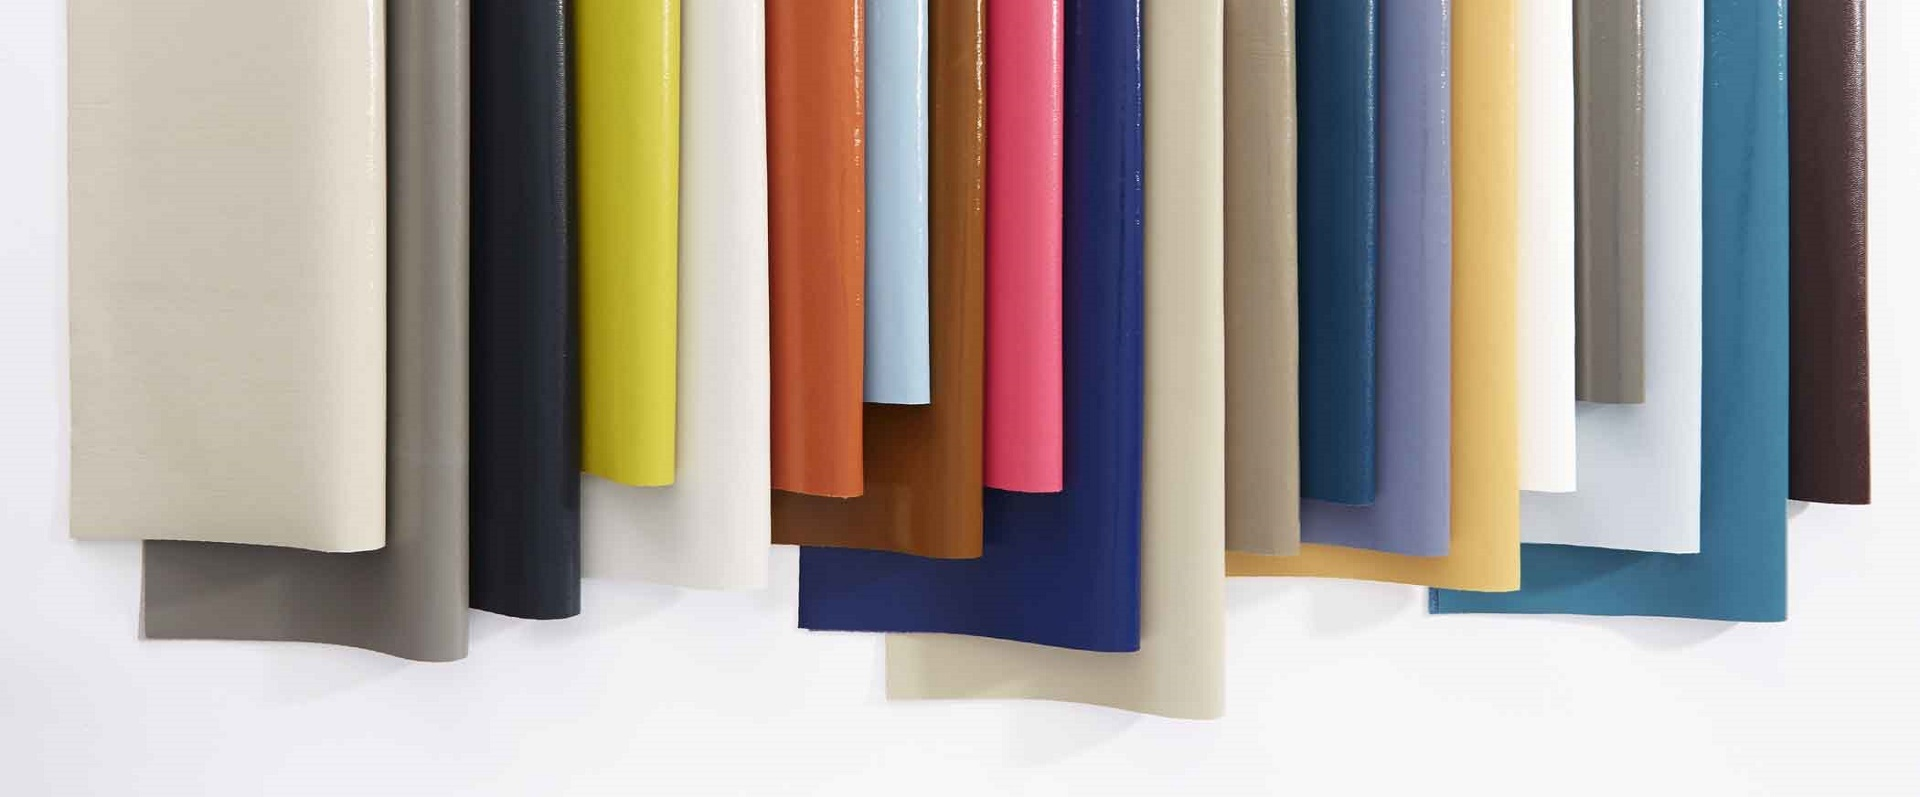 Fabrics in a line